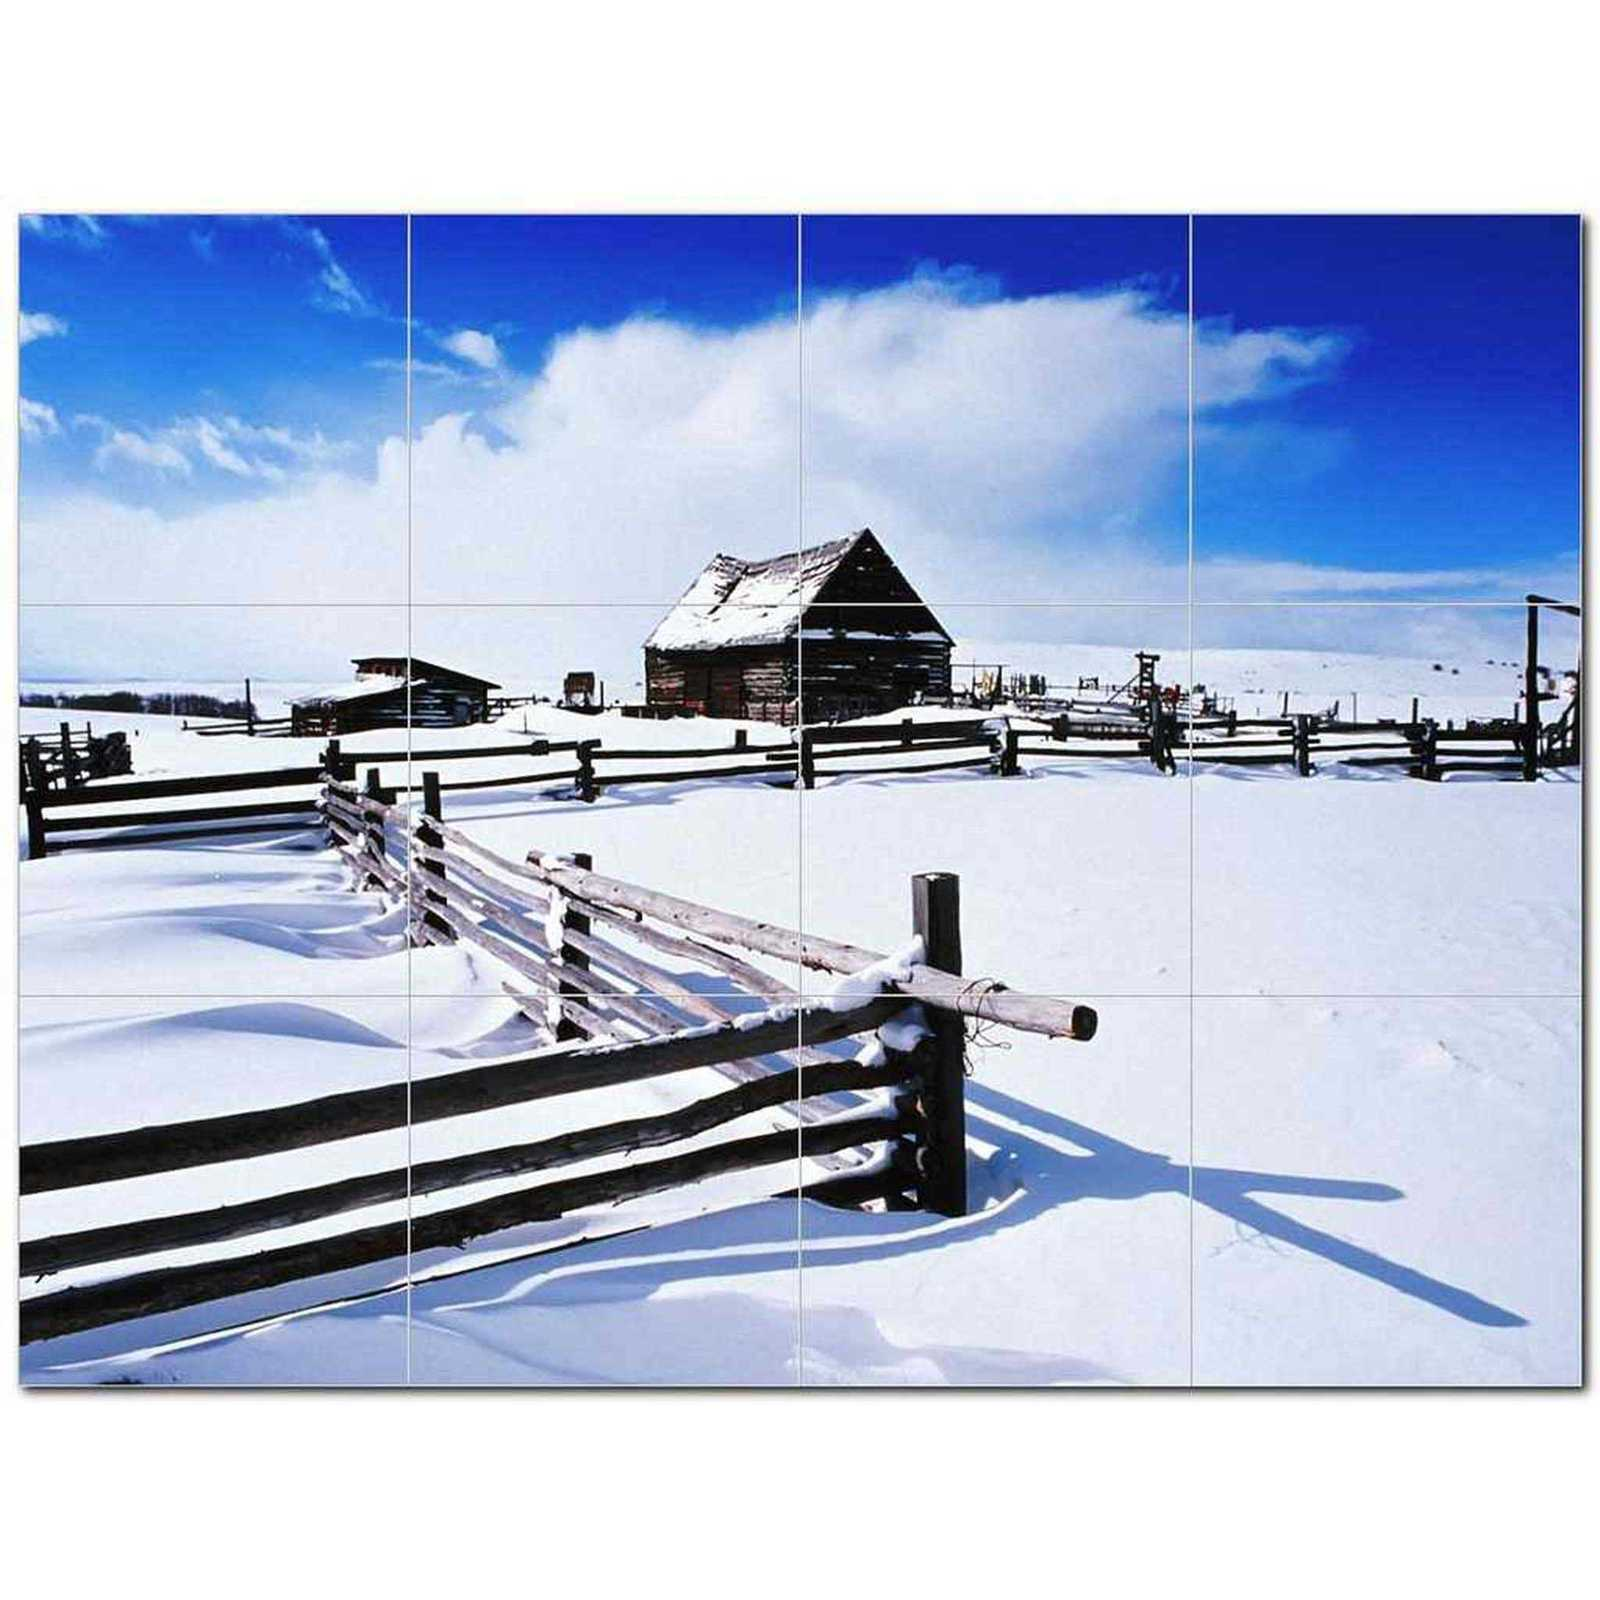 Primary image for Winter Photo Ceramic Tile Mural Kitchen Backsplash Bathroom Shower BAZ406401